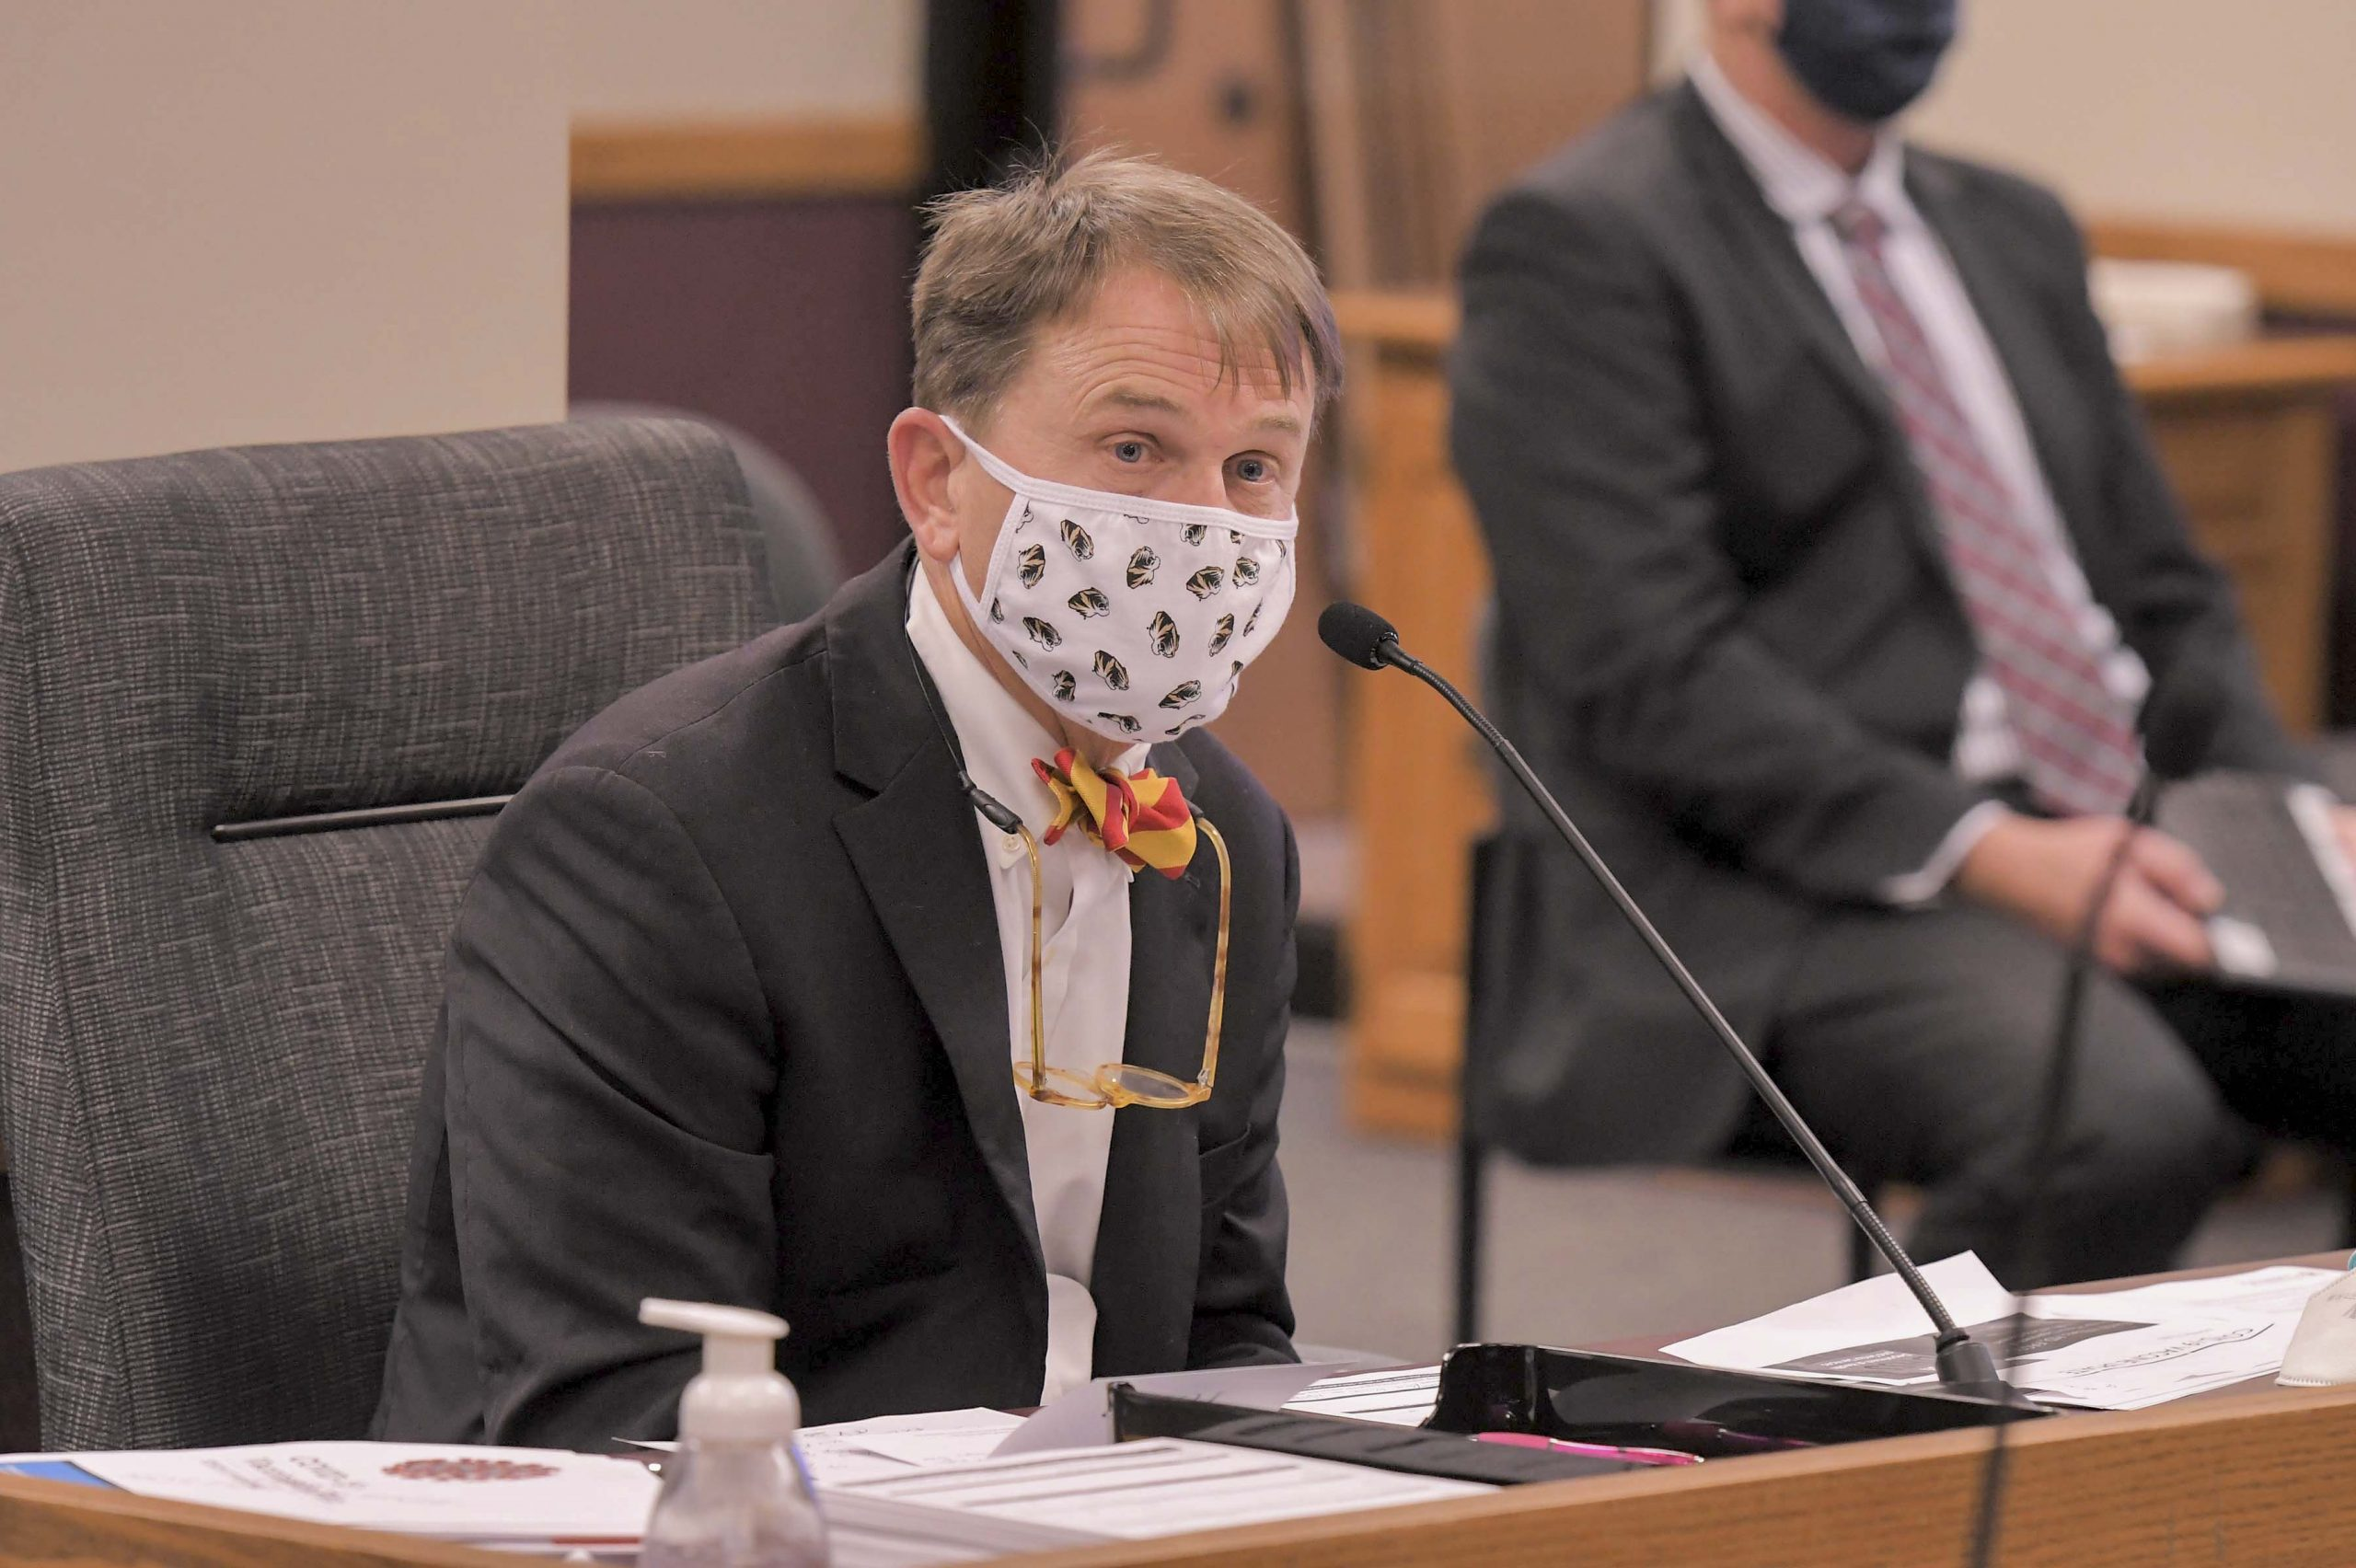 Randall Williams, director of the Missouri Department of Health and Senior Services testifies before the House Special Committee on Disease Control and Prevention